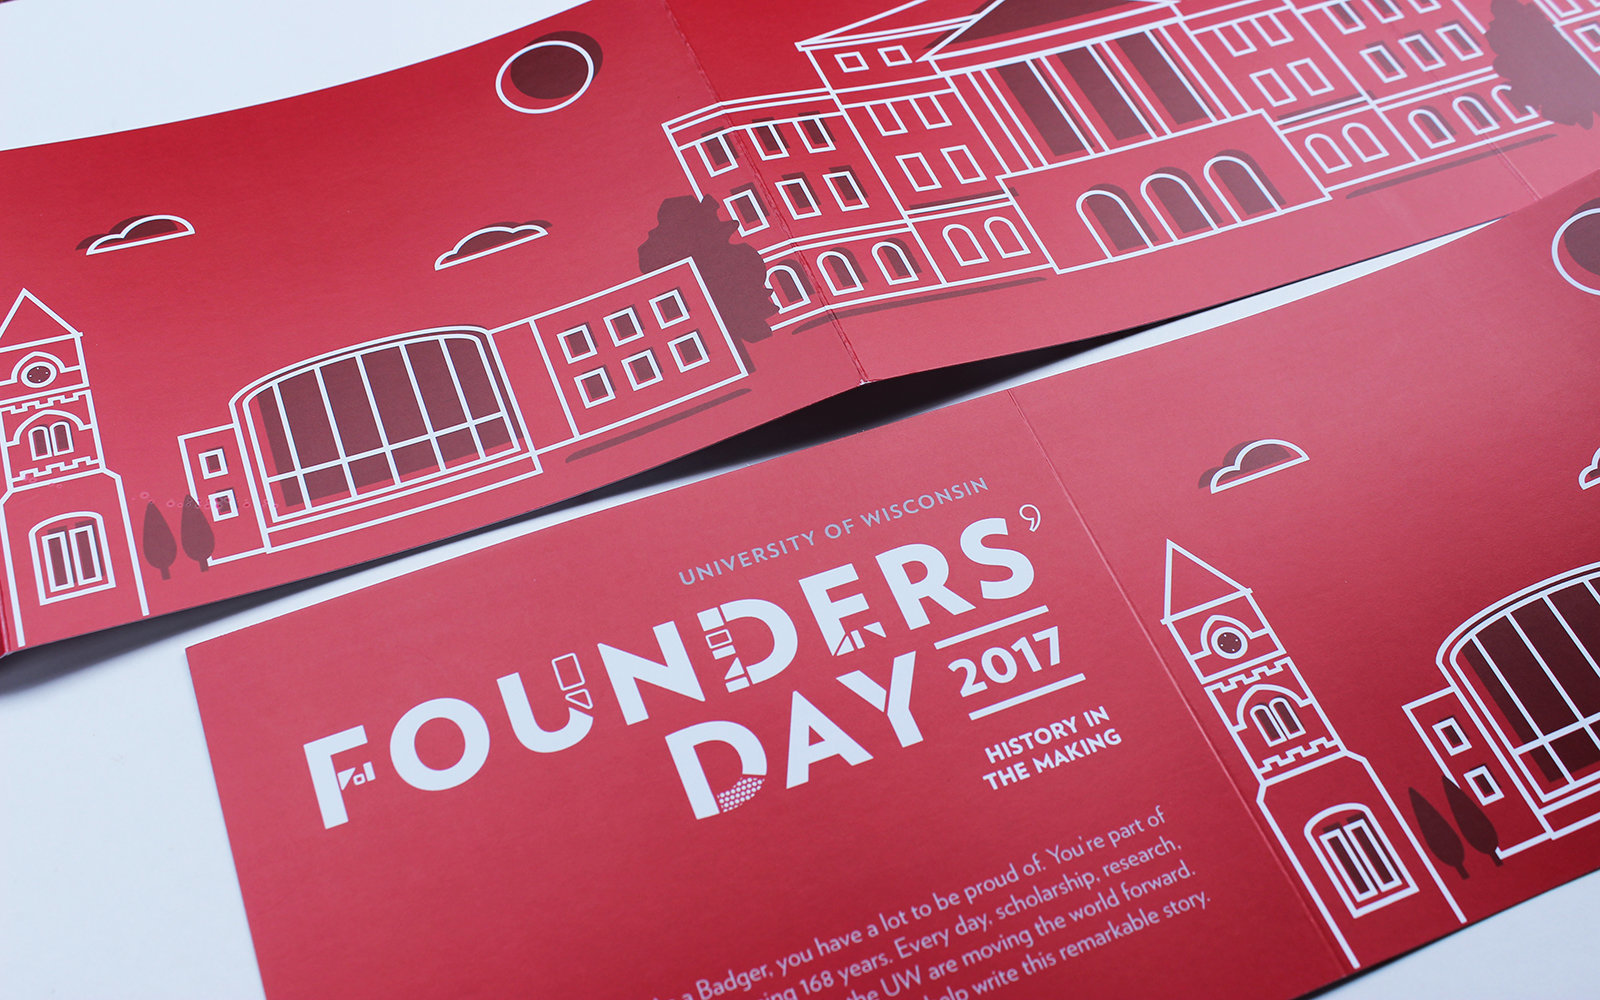 Event invitation and illustration for the University of Wisconsin by Christie Evenson